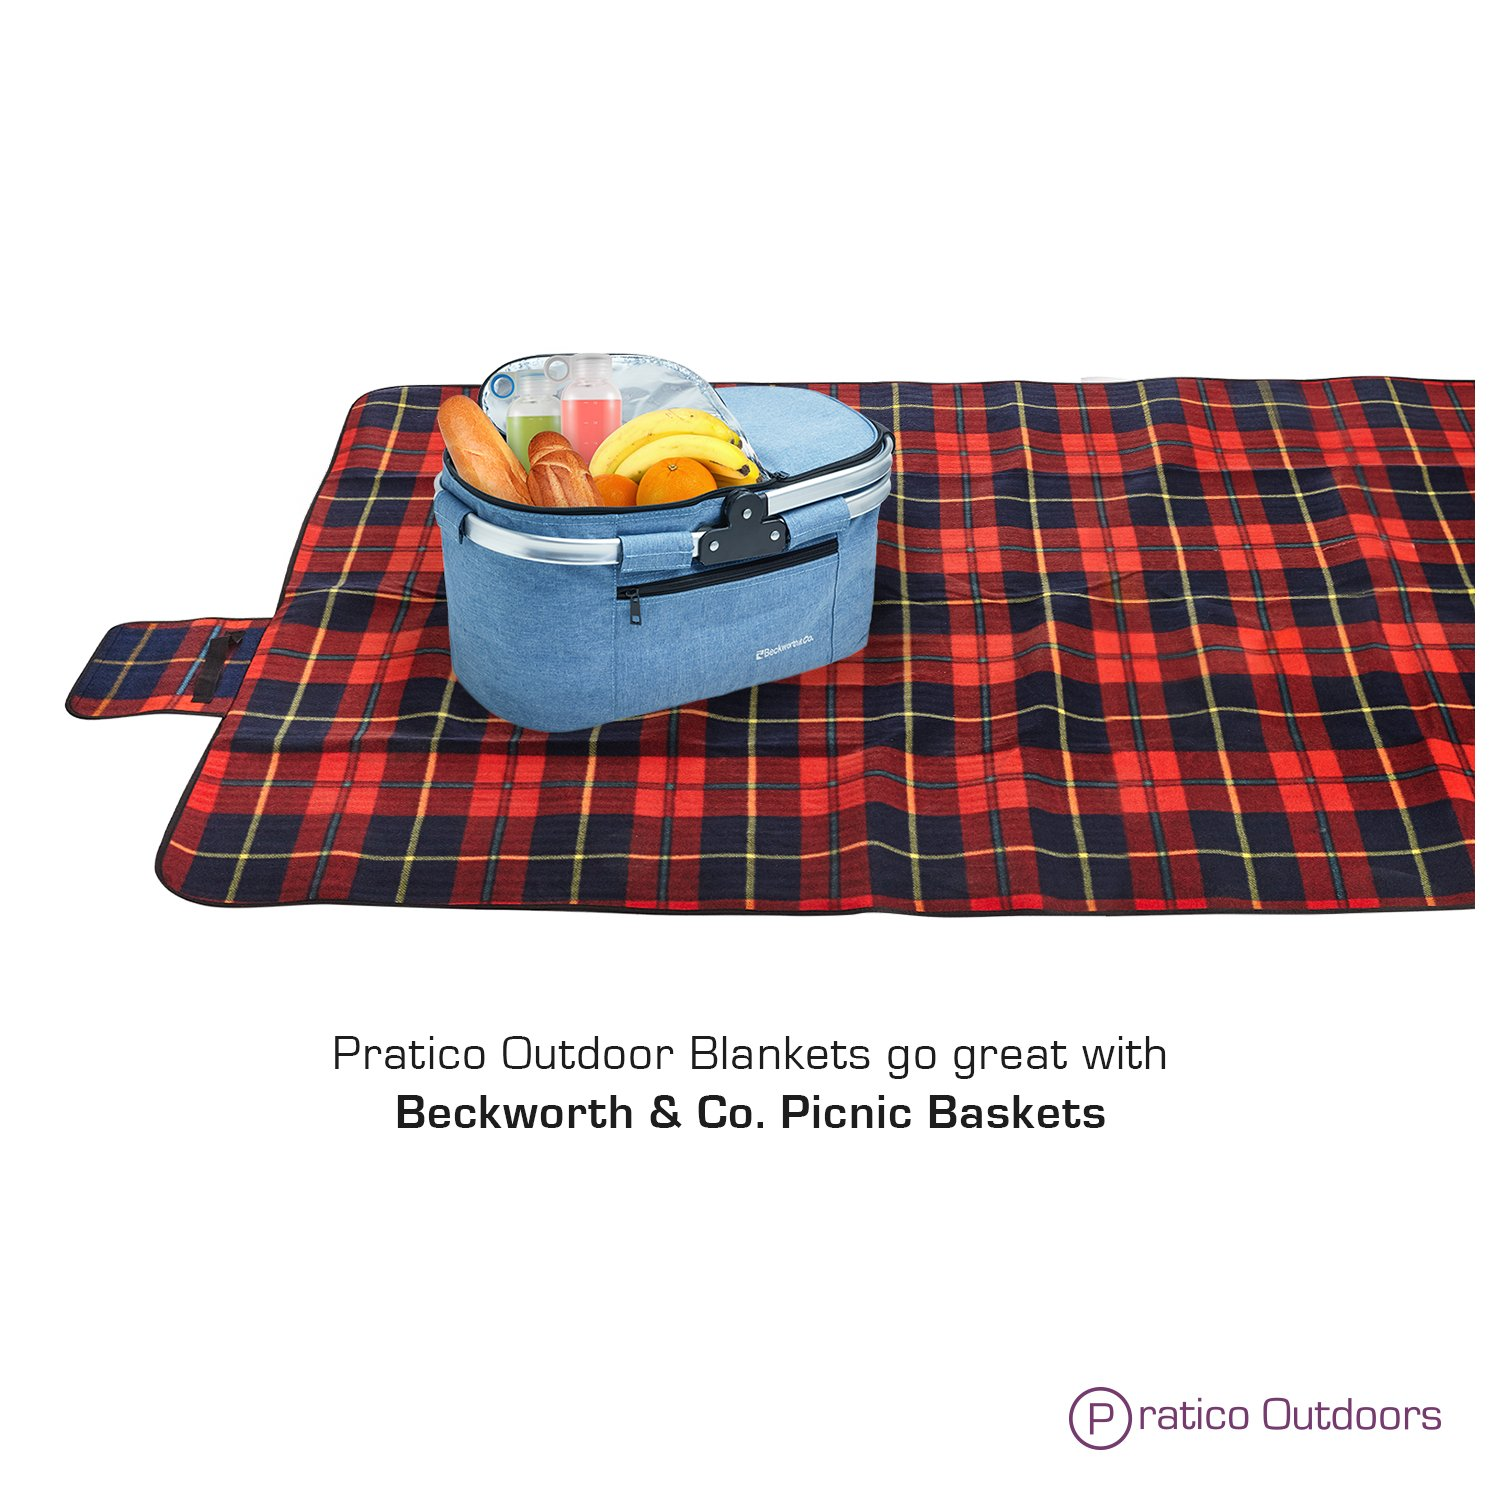 Extra Large Picnic /& Outdoor Beach Blanket with Water-Resistant Backing Red 60 x 80 inches Pratico Outdoors